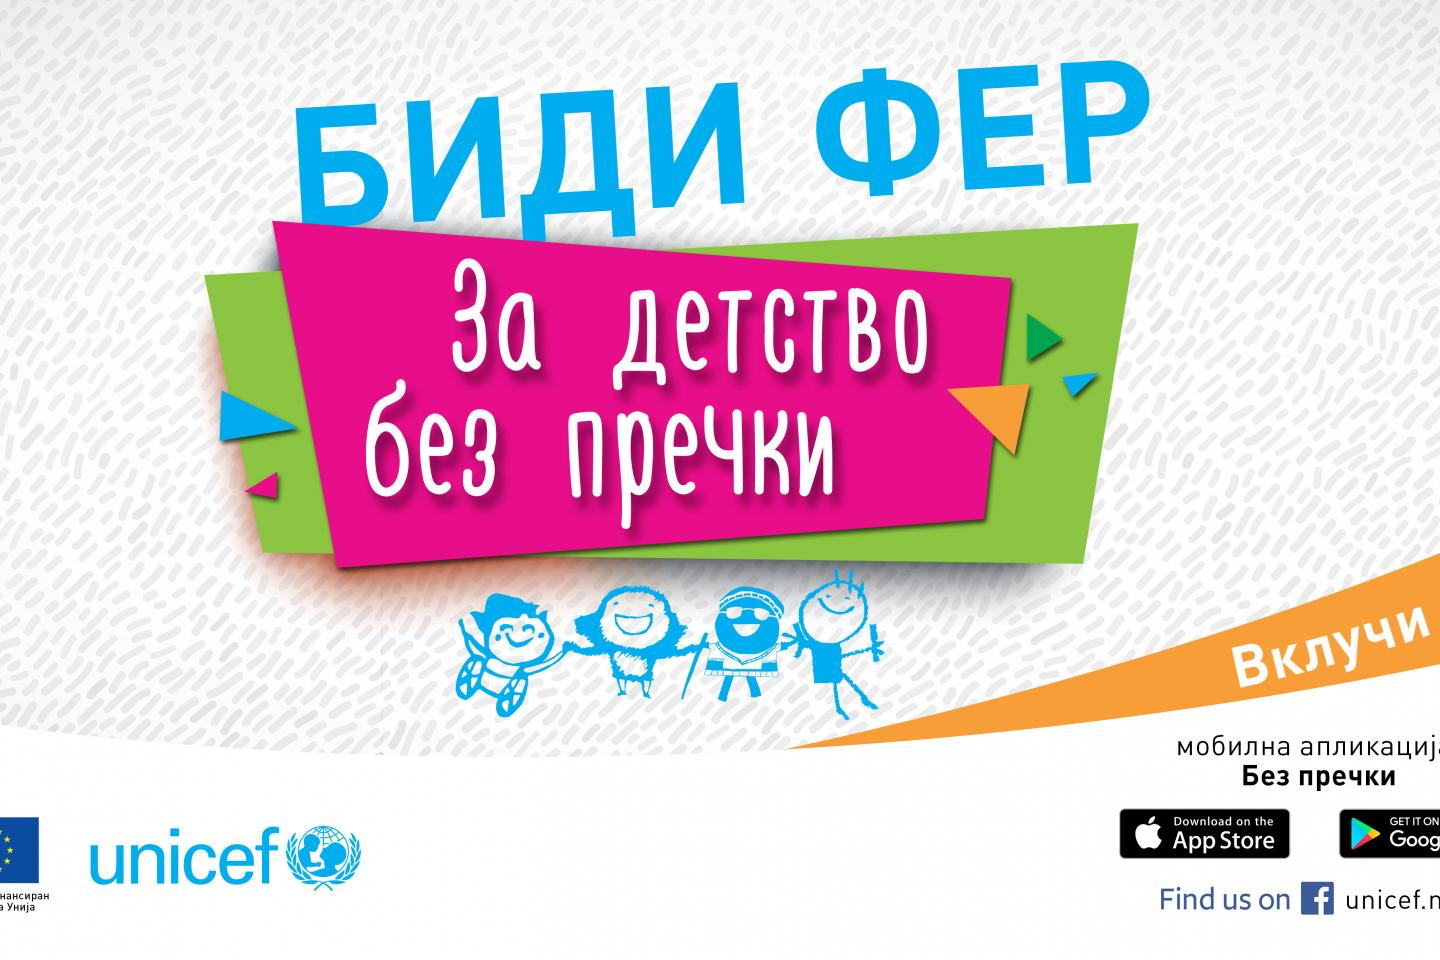 Be Fair - For a Childhood Without Barriers   UNICEF North Macedonia